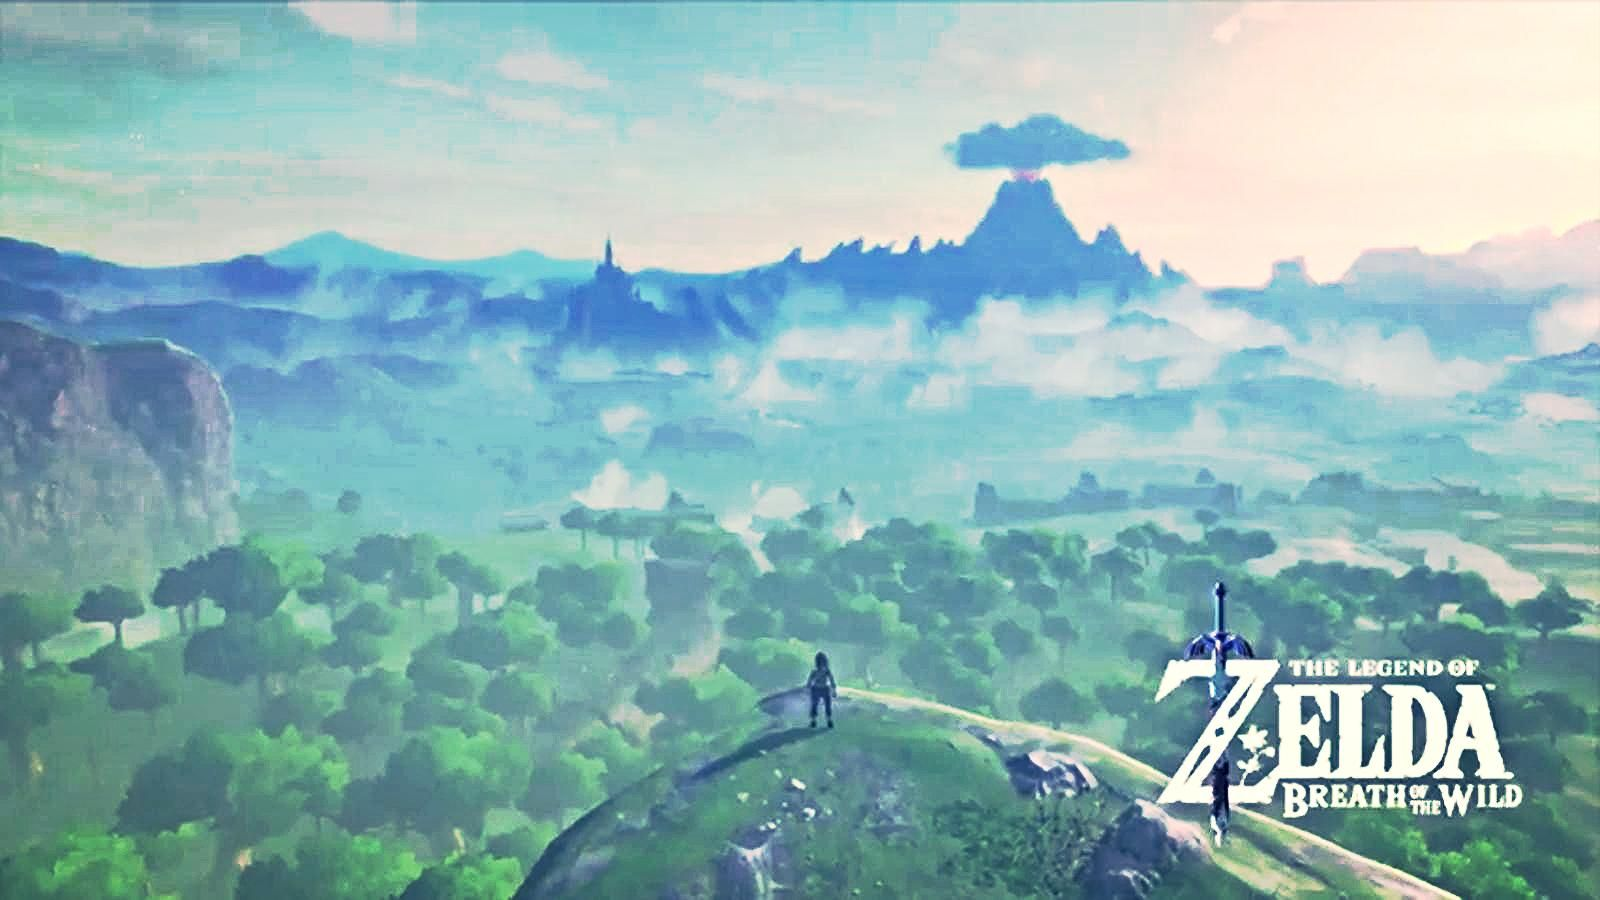 The Legend Of Zelda Breath Of The Wild Hd Wallpaper 6 1600 X